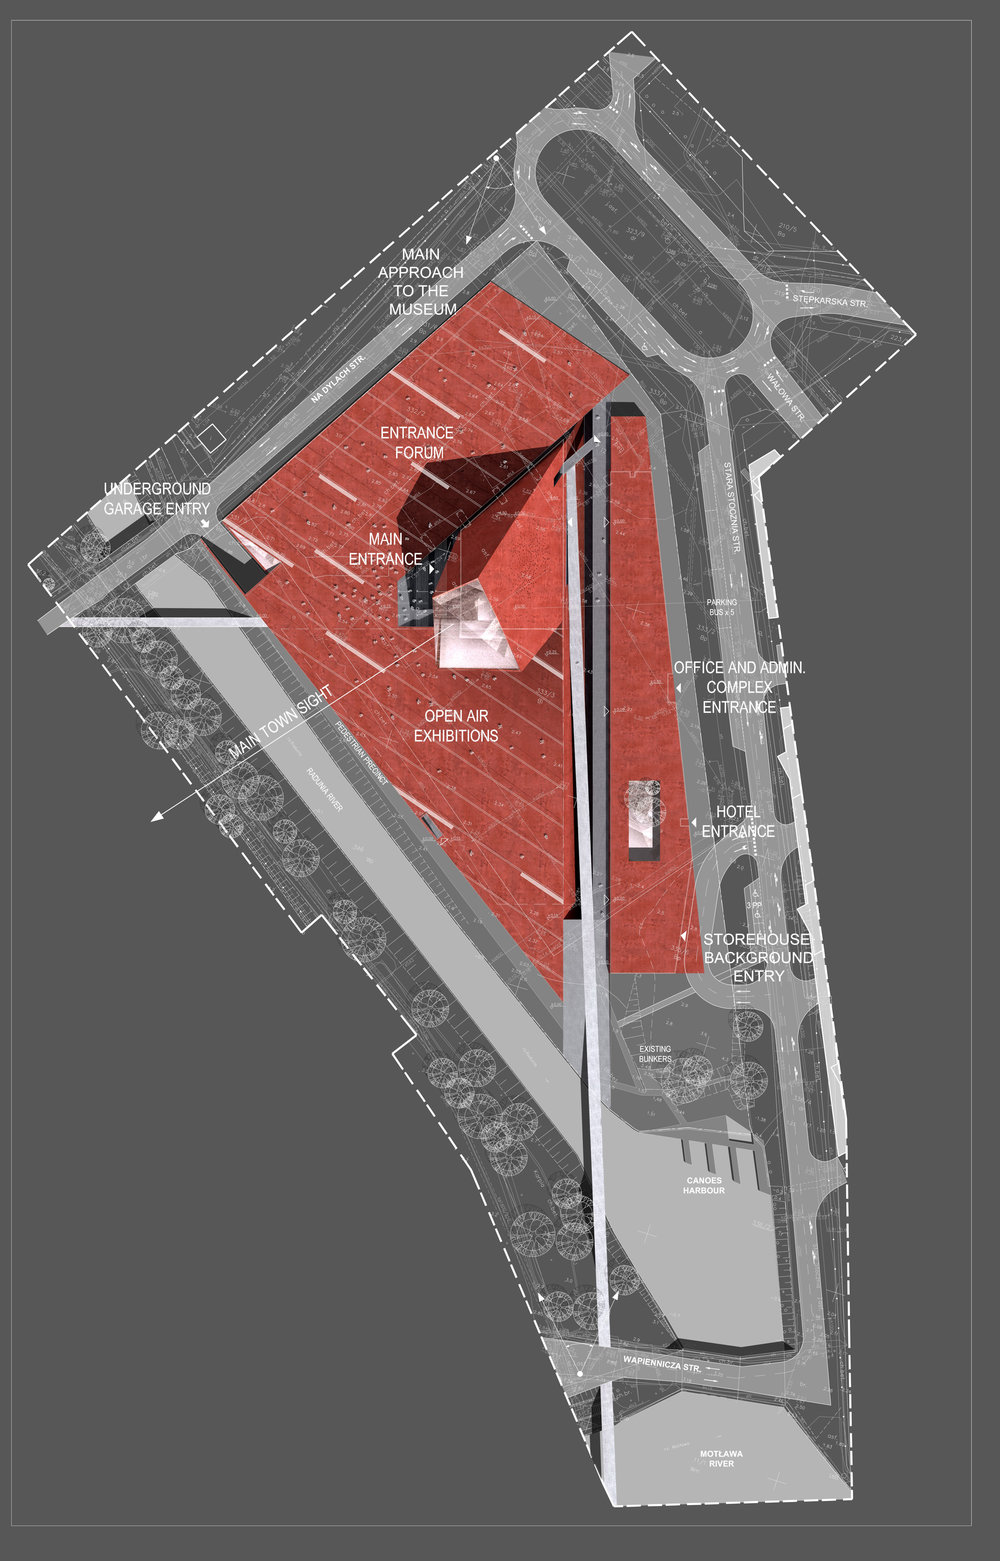 Site plan made for the competition